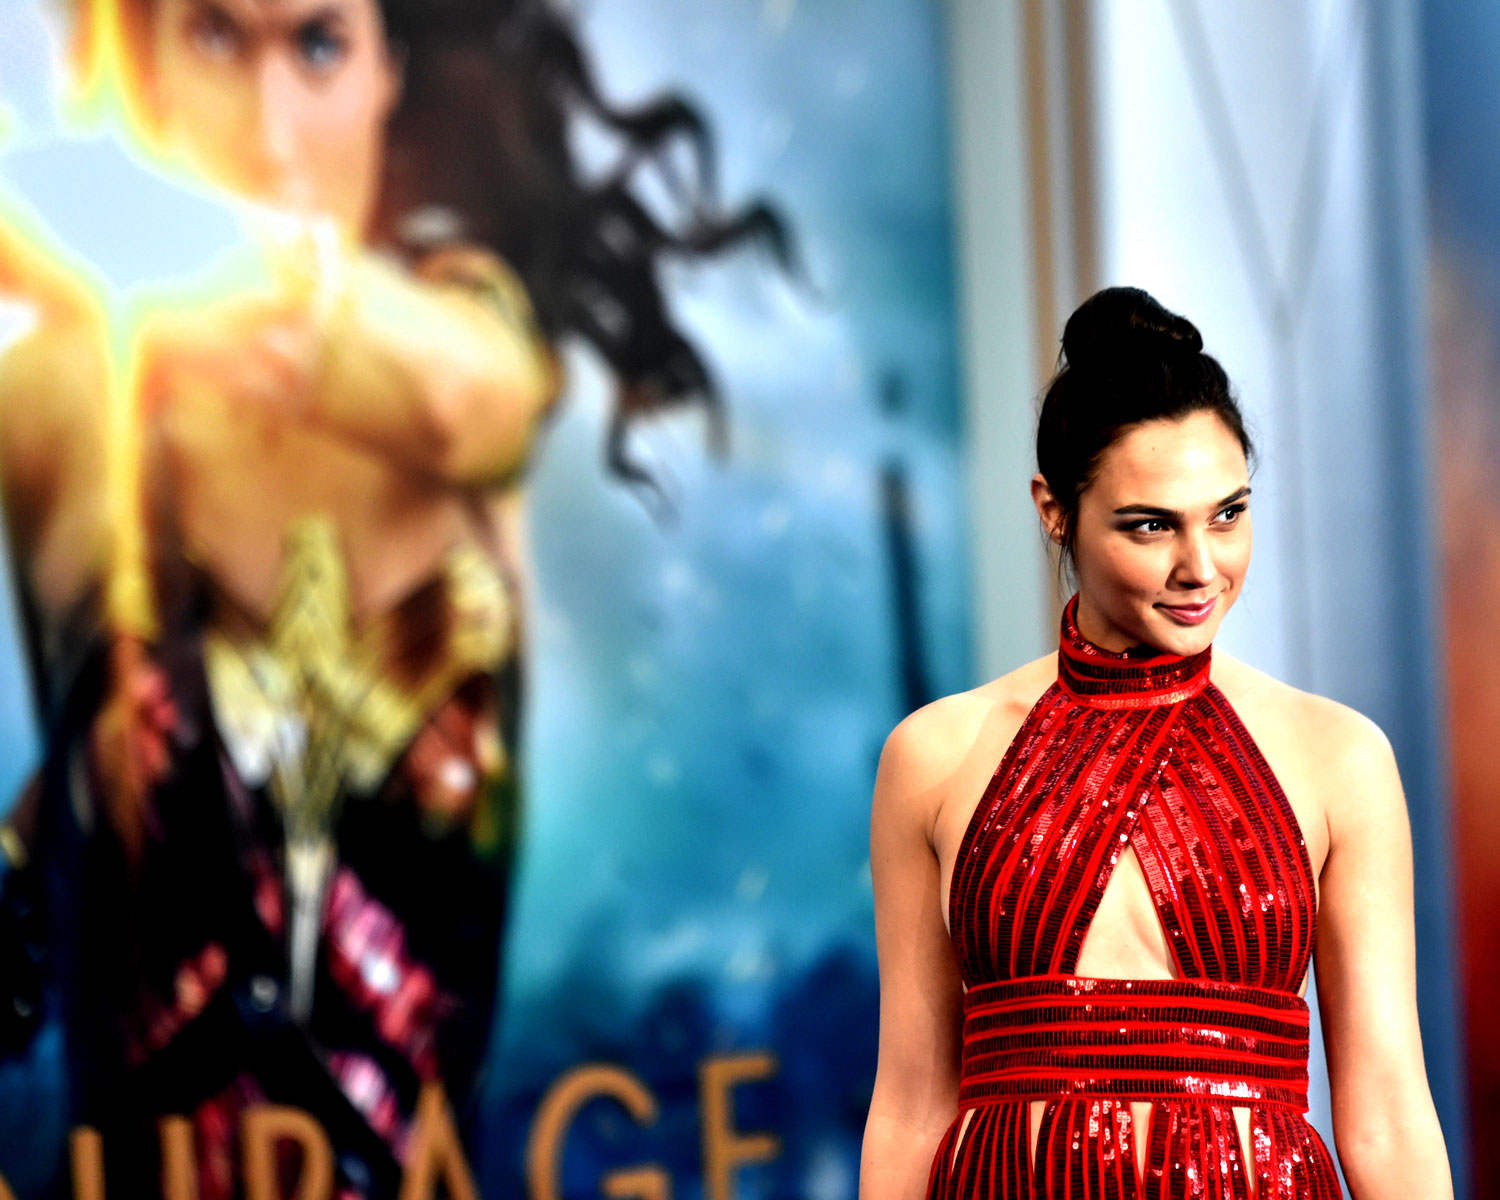 wonder woman once officiated gay wedding wonder woman wedding ring Wonder Woman Gal Gadot